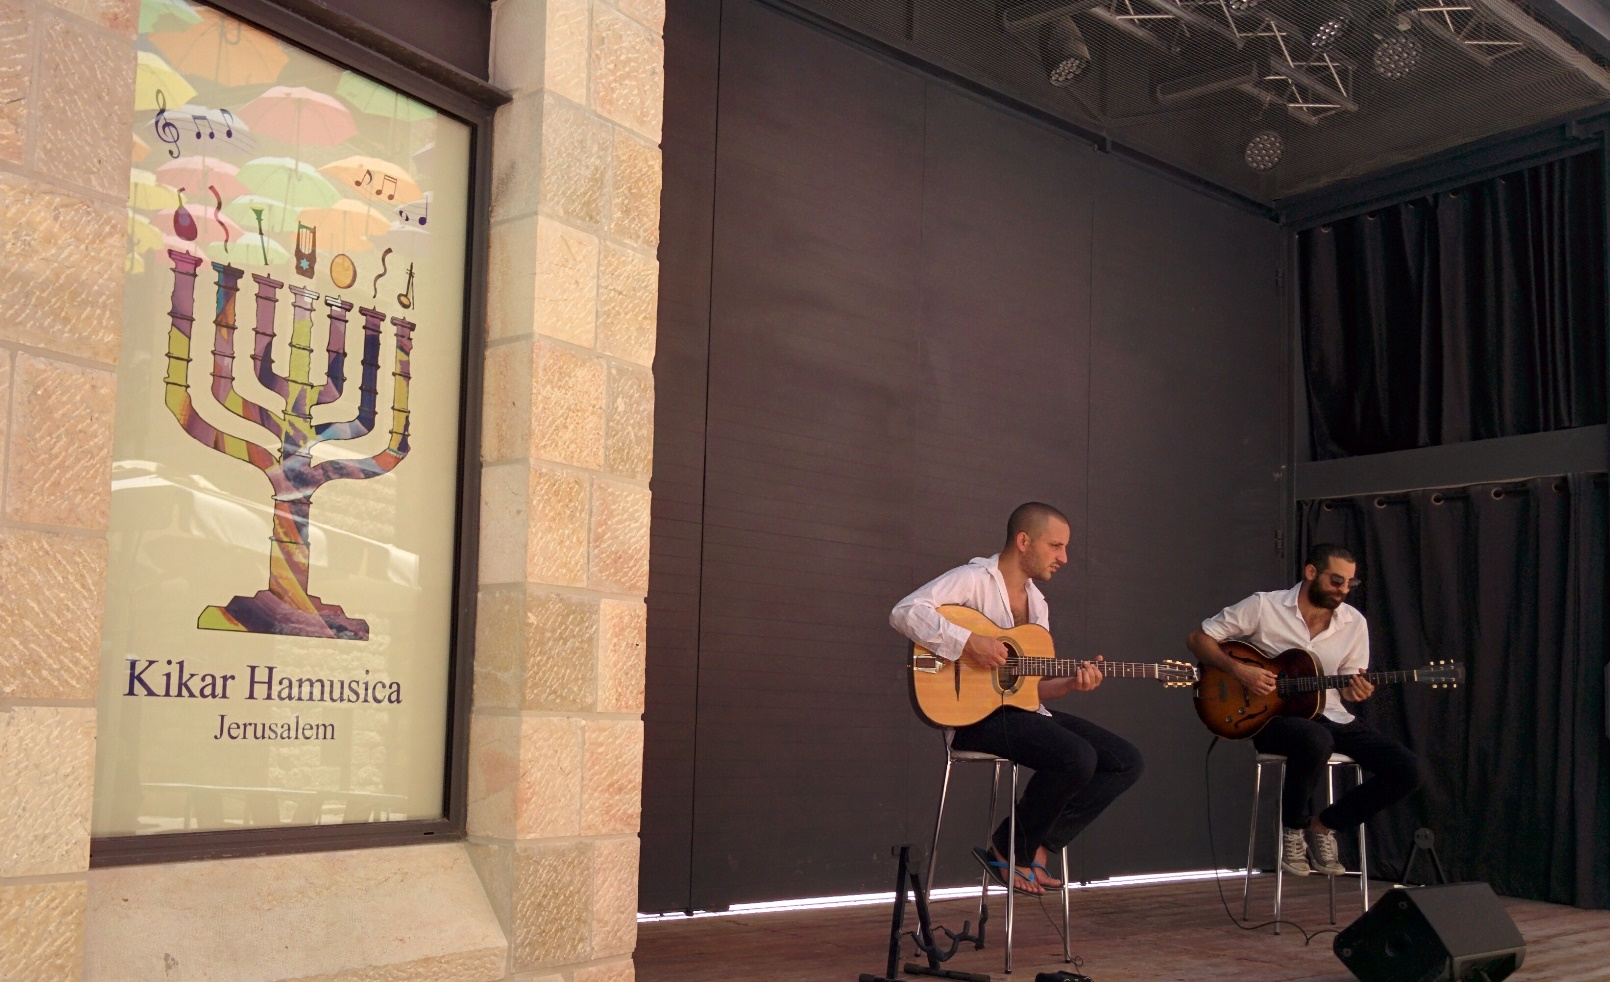 Musicians entertaining the lunchtime crowd at Piccolino in Music Square, Jerusalem. Photo by Abigail Klein Leichman